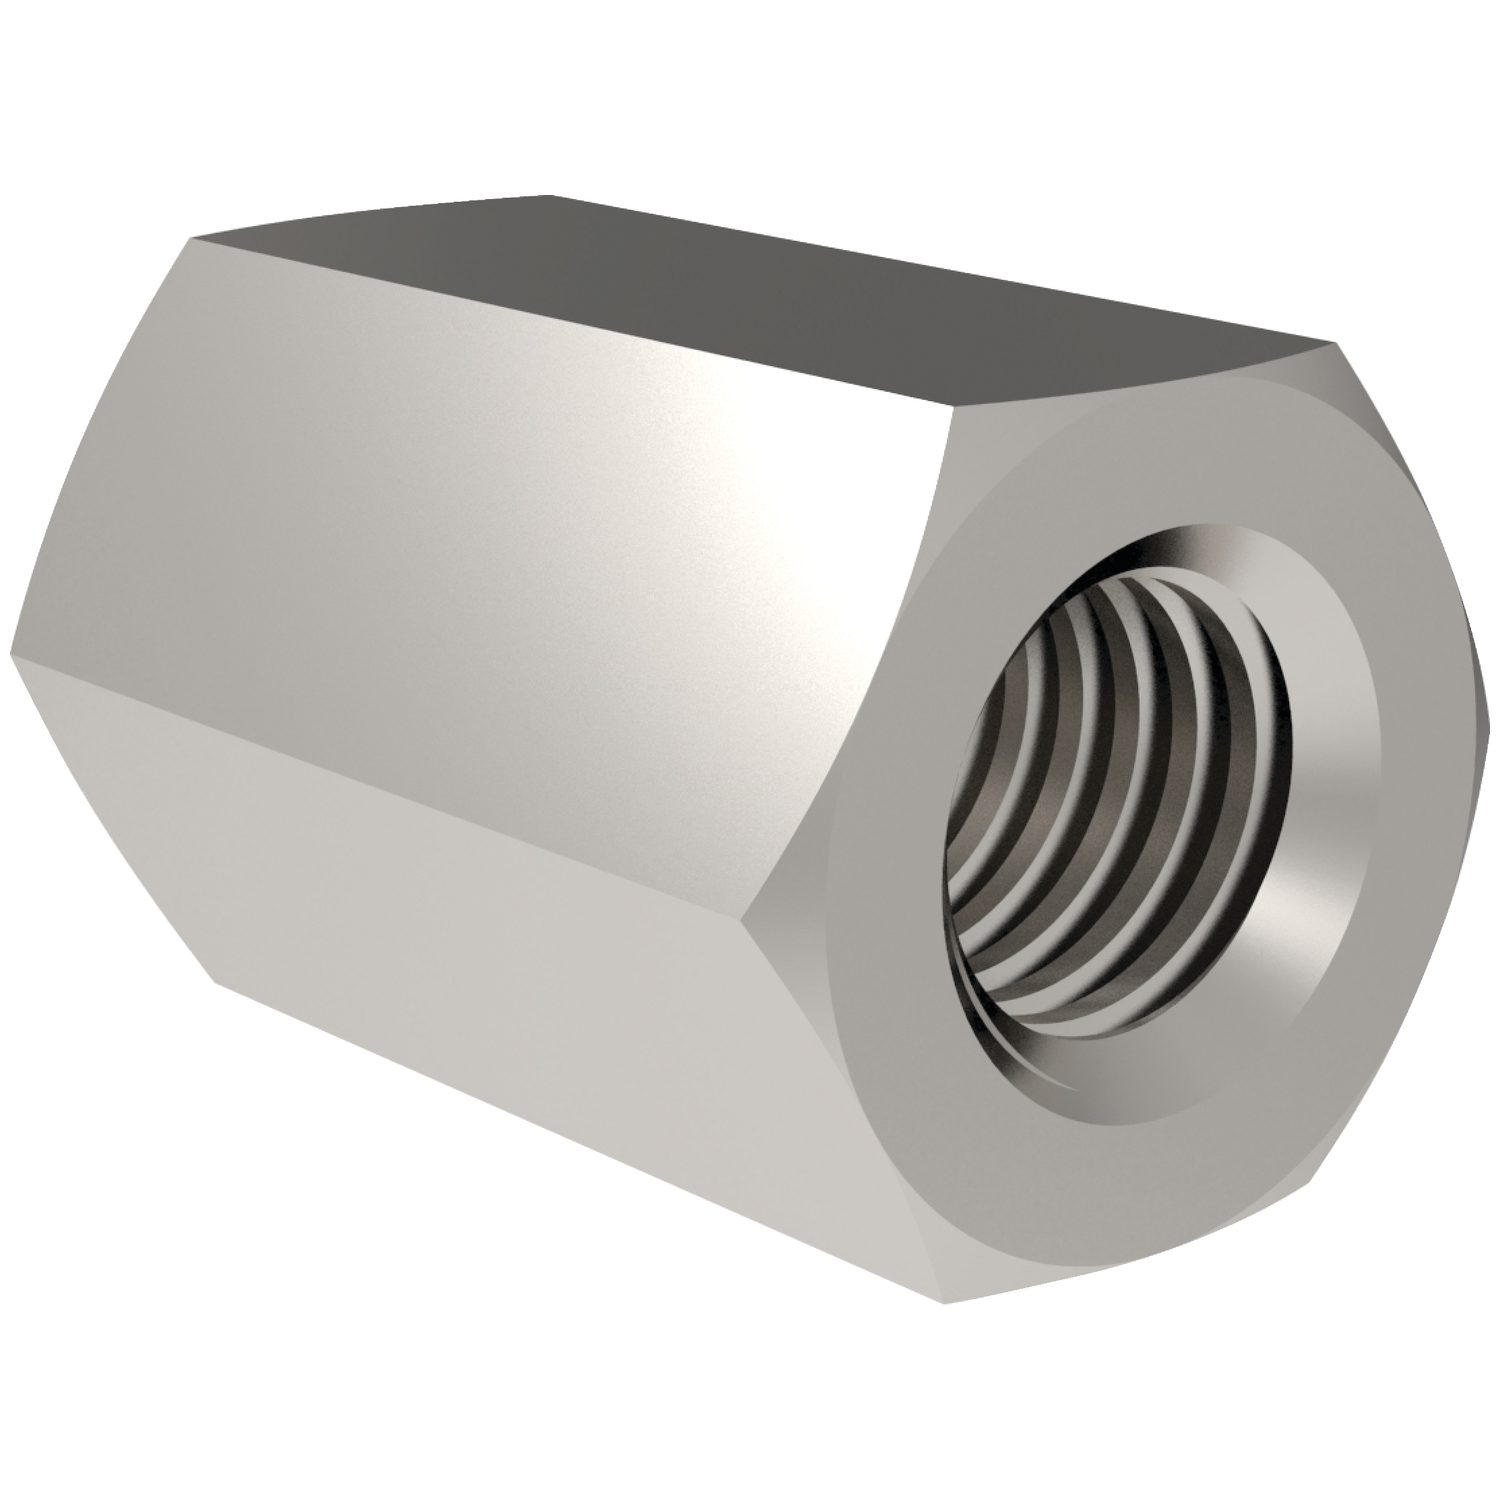 Hexagonal Coupler Nuts